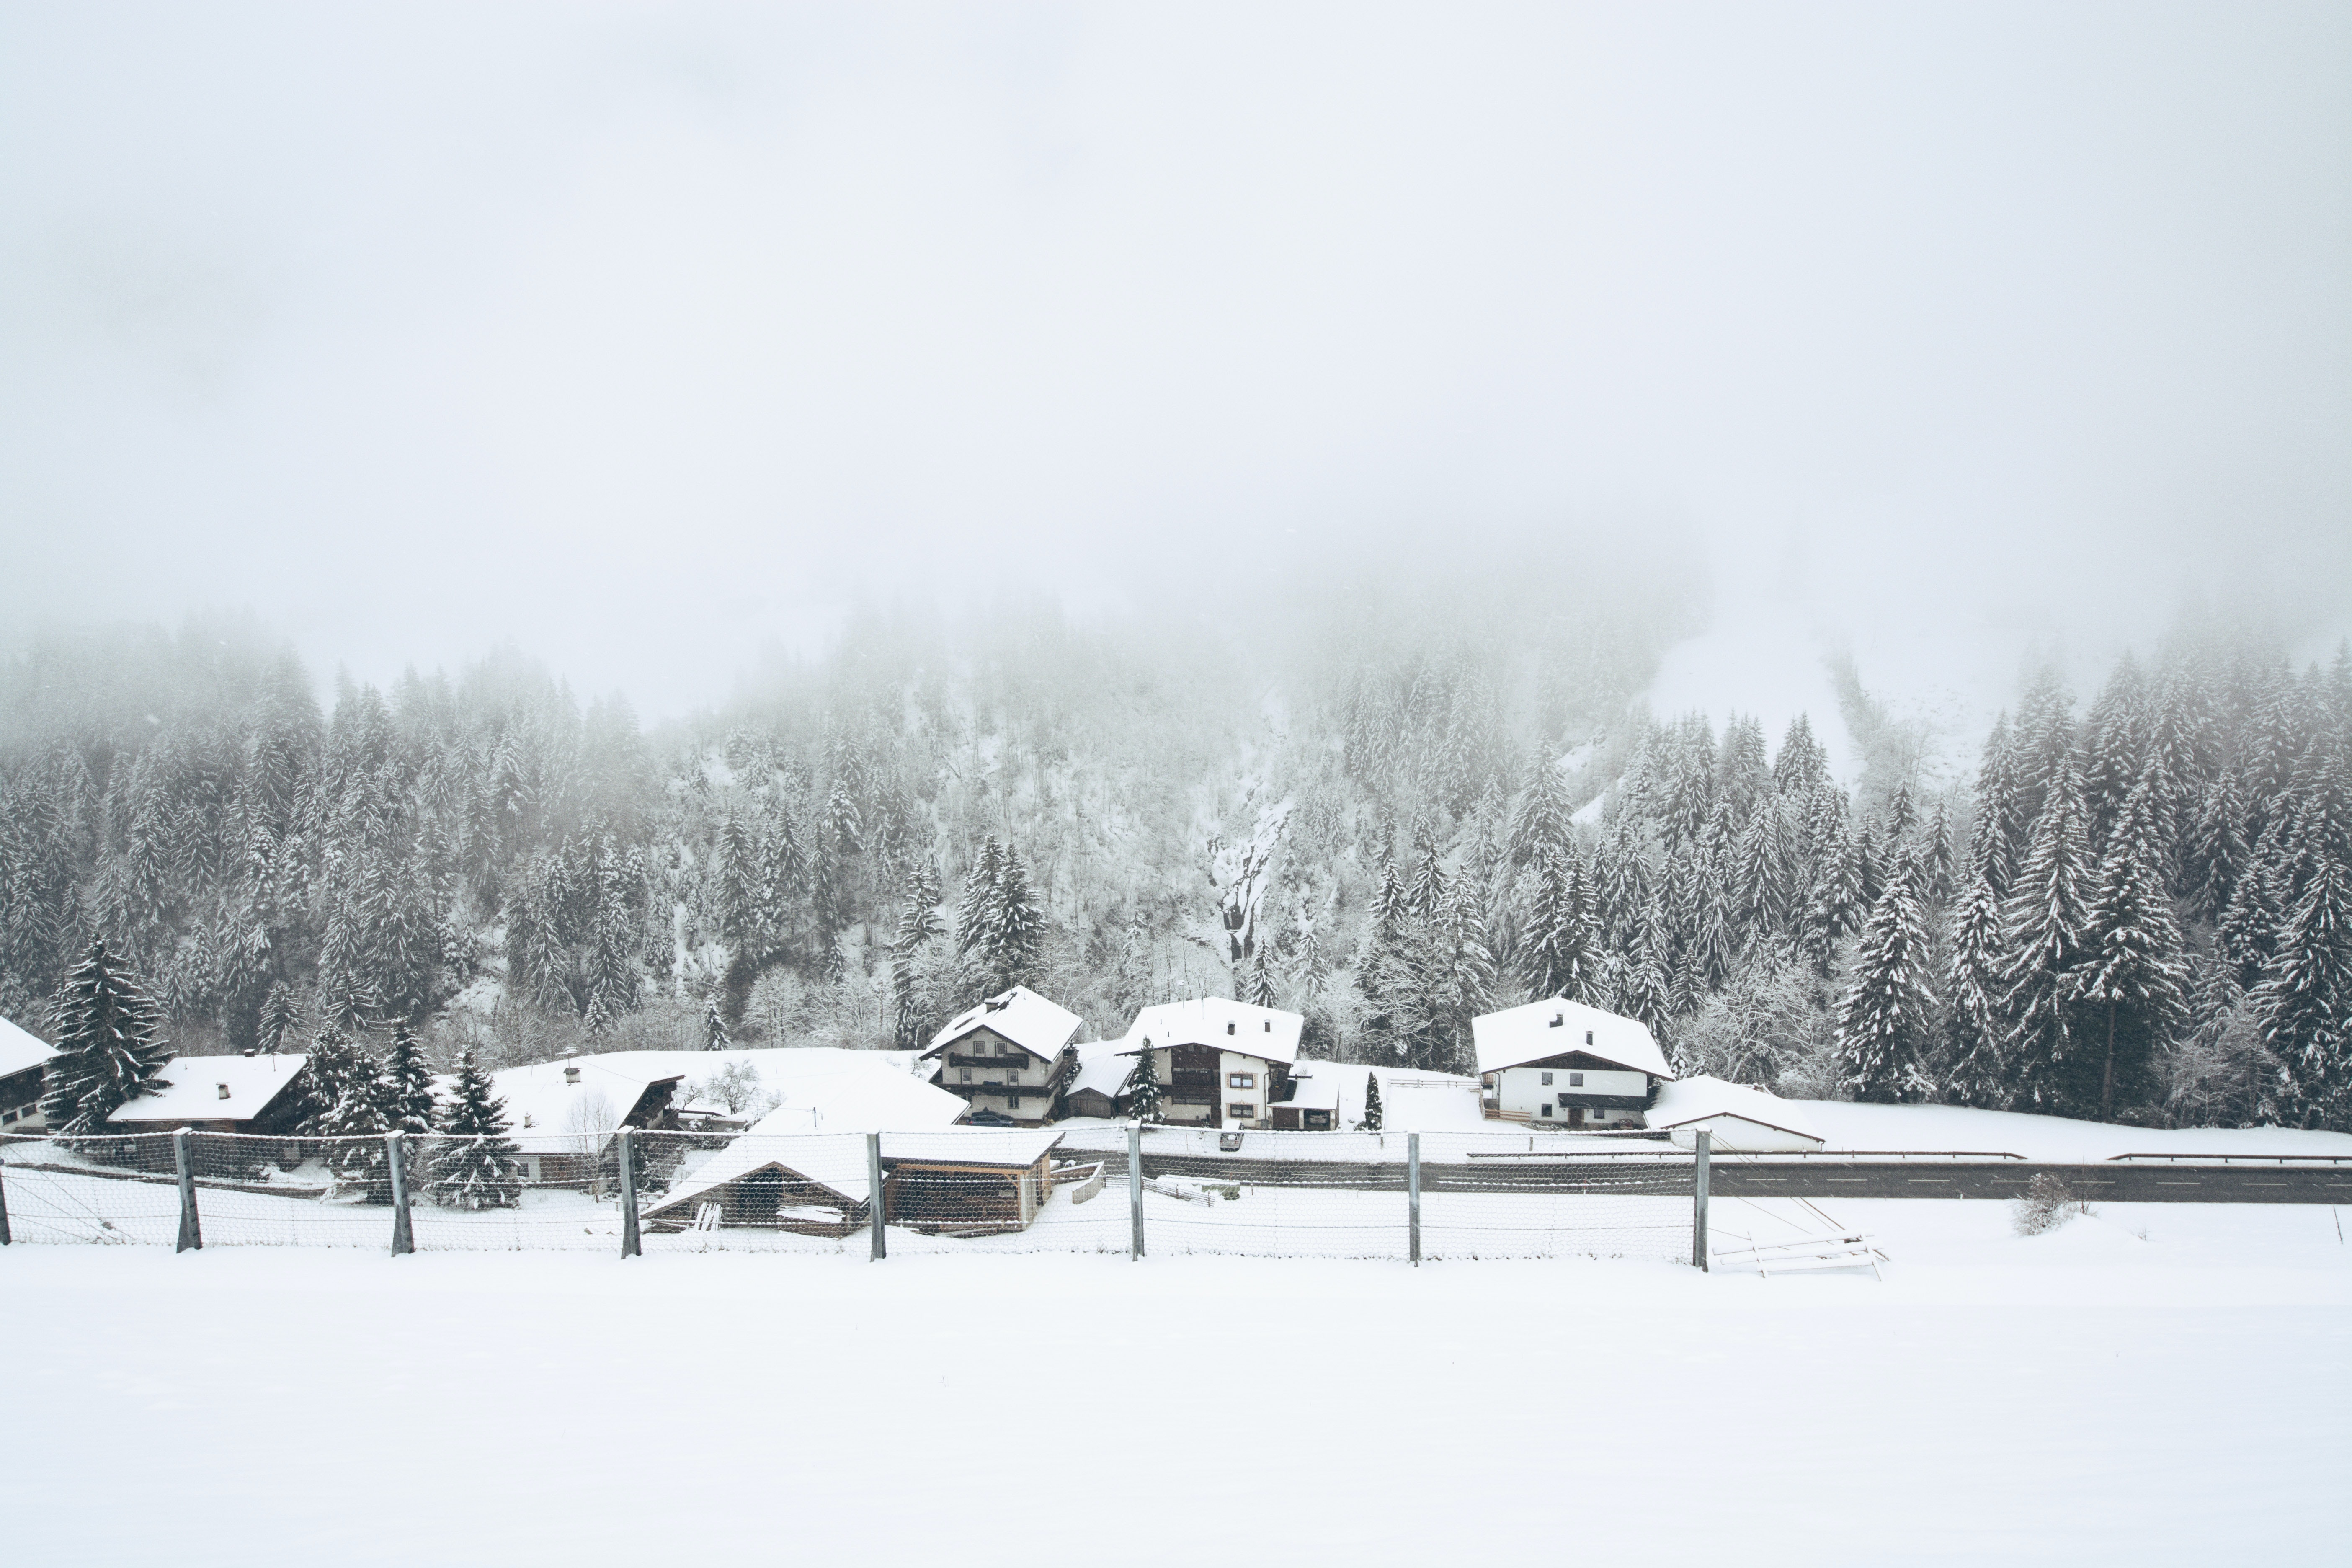 Fog over snow covered cabins near a forest in Finkenberg